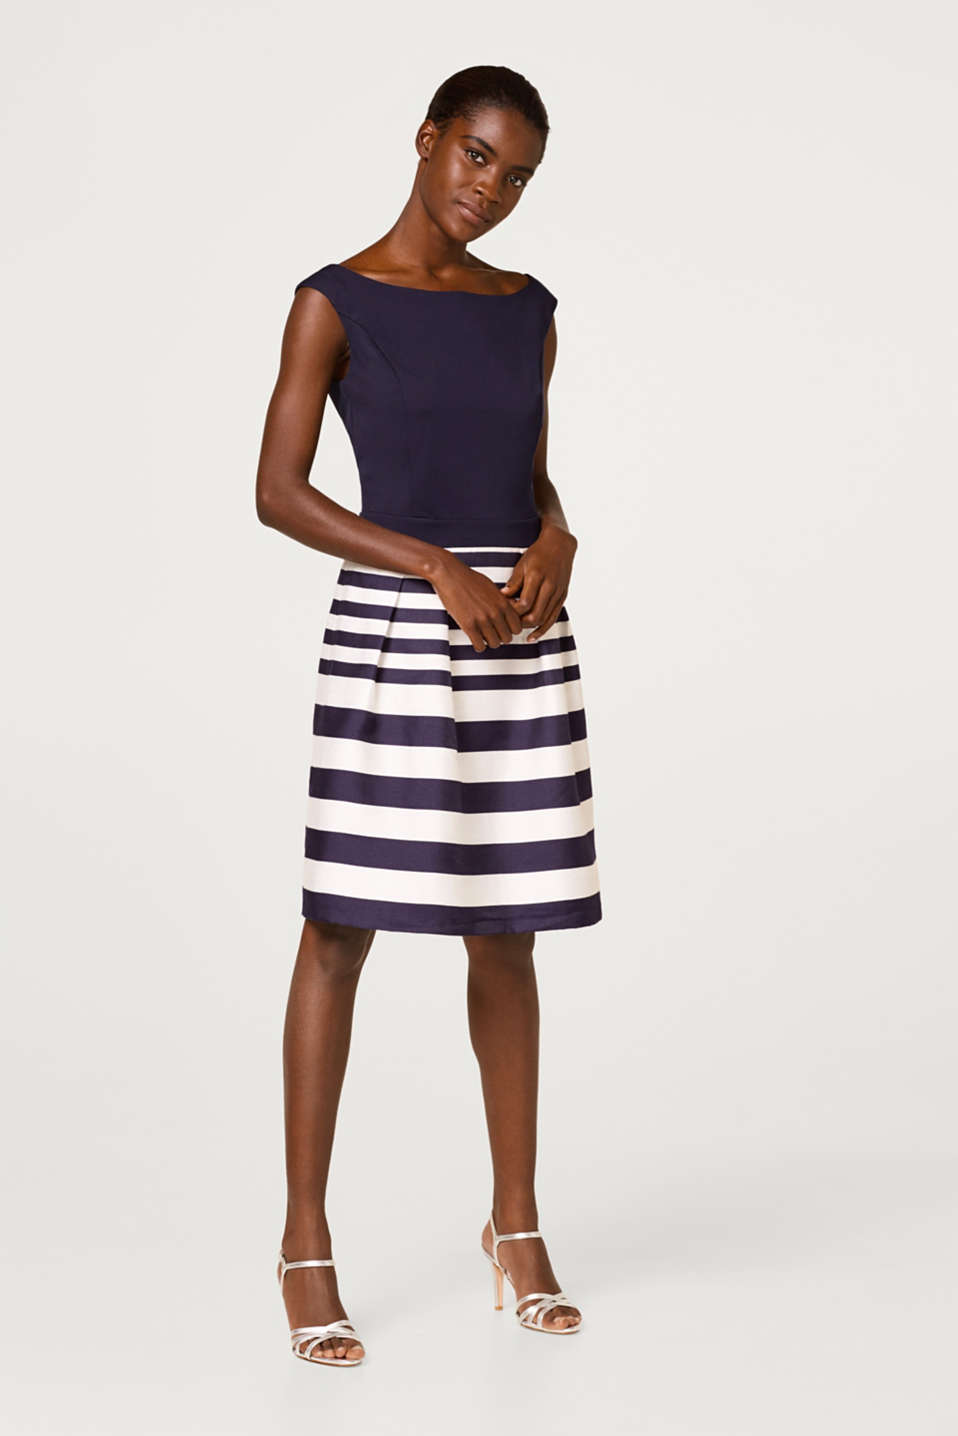 Esprit - Dress with a jersey top and woven skirt